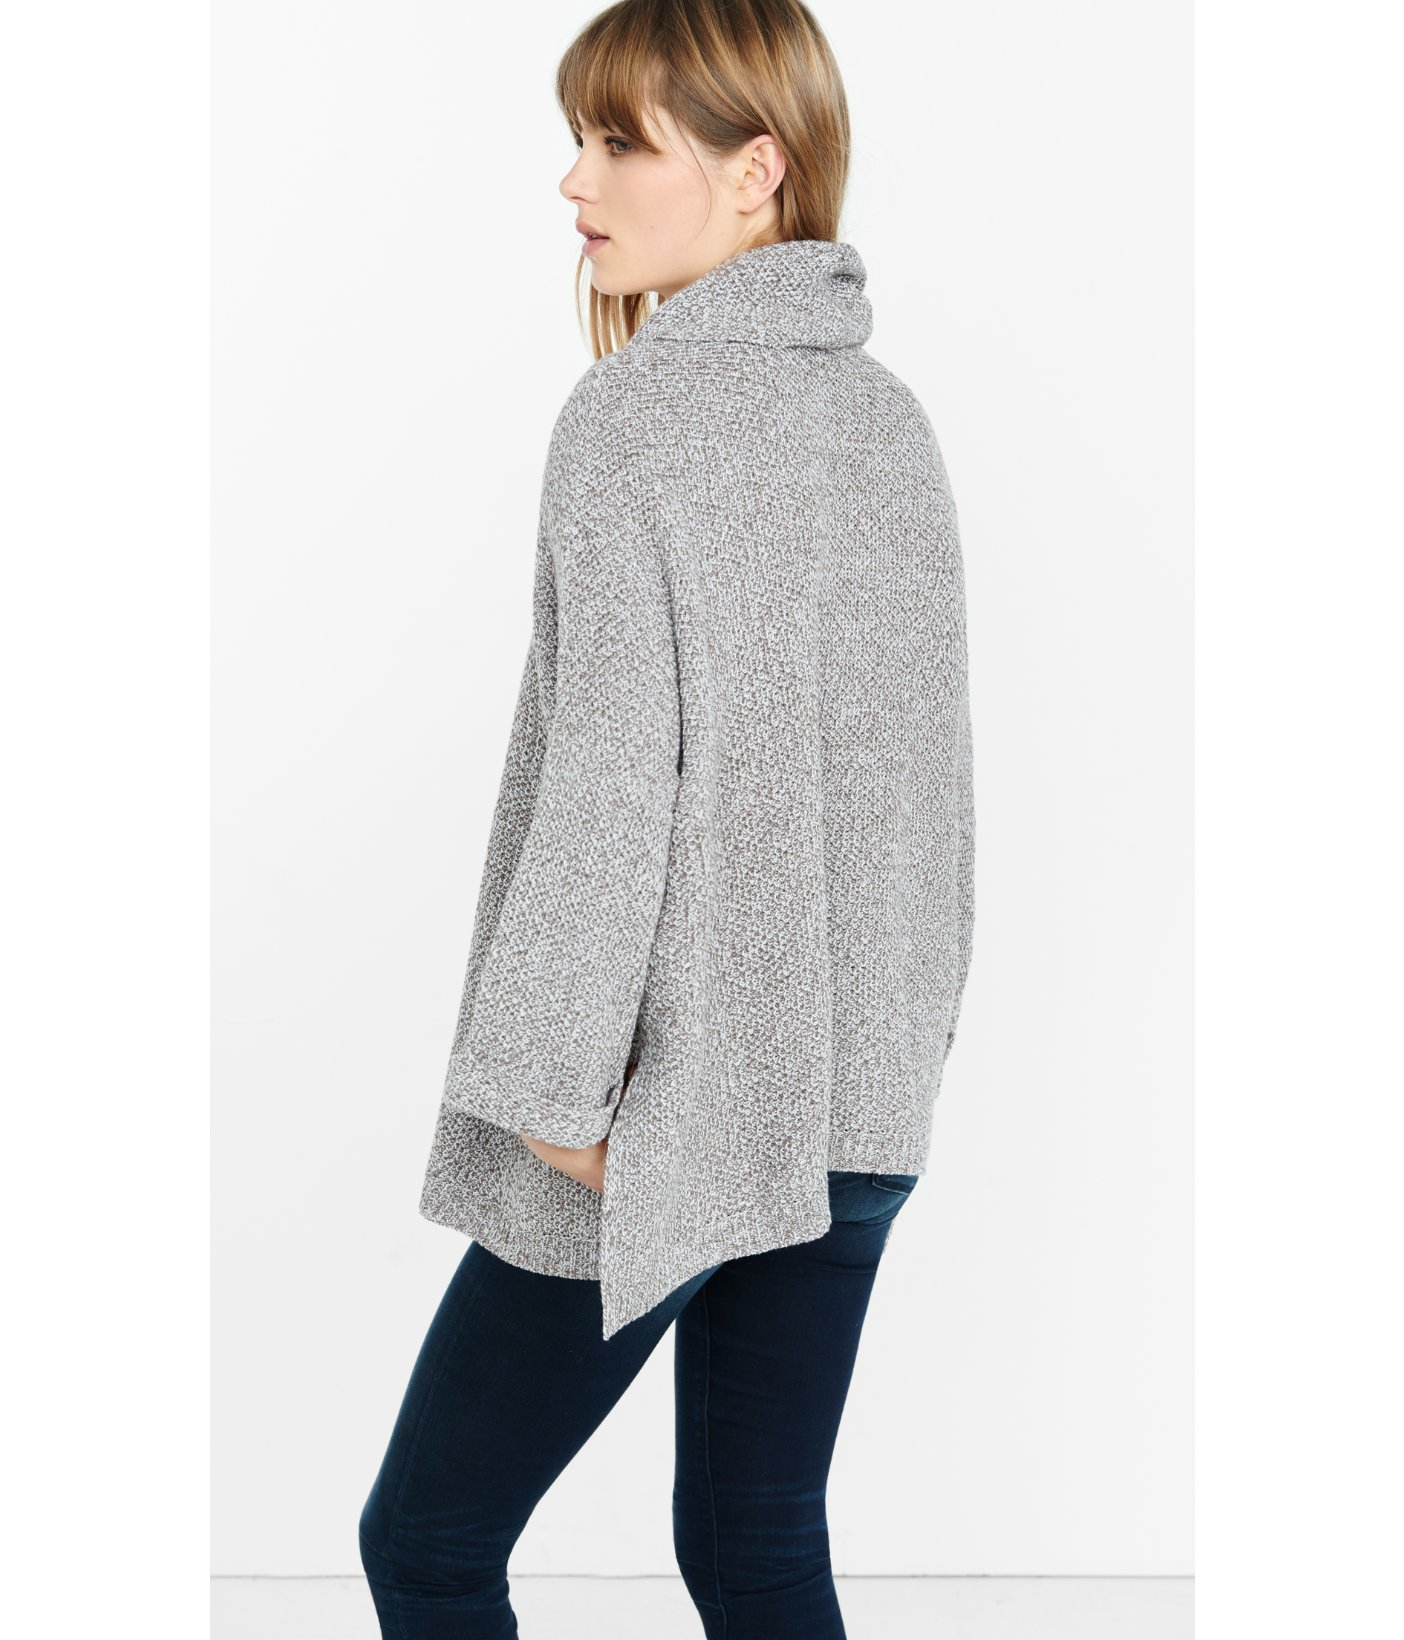 Express Marl Cowl Neck Boxy Sweater in Gray | Lyst